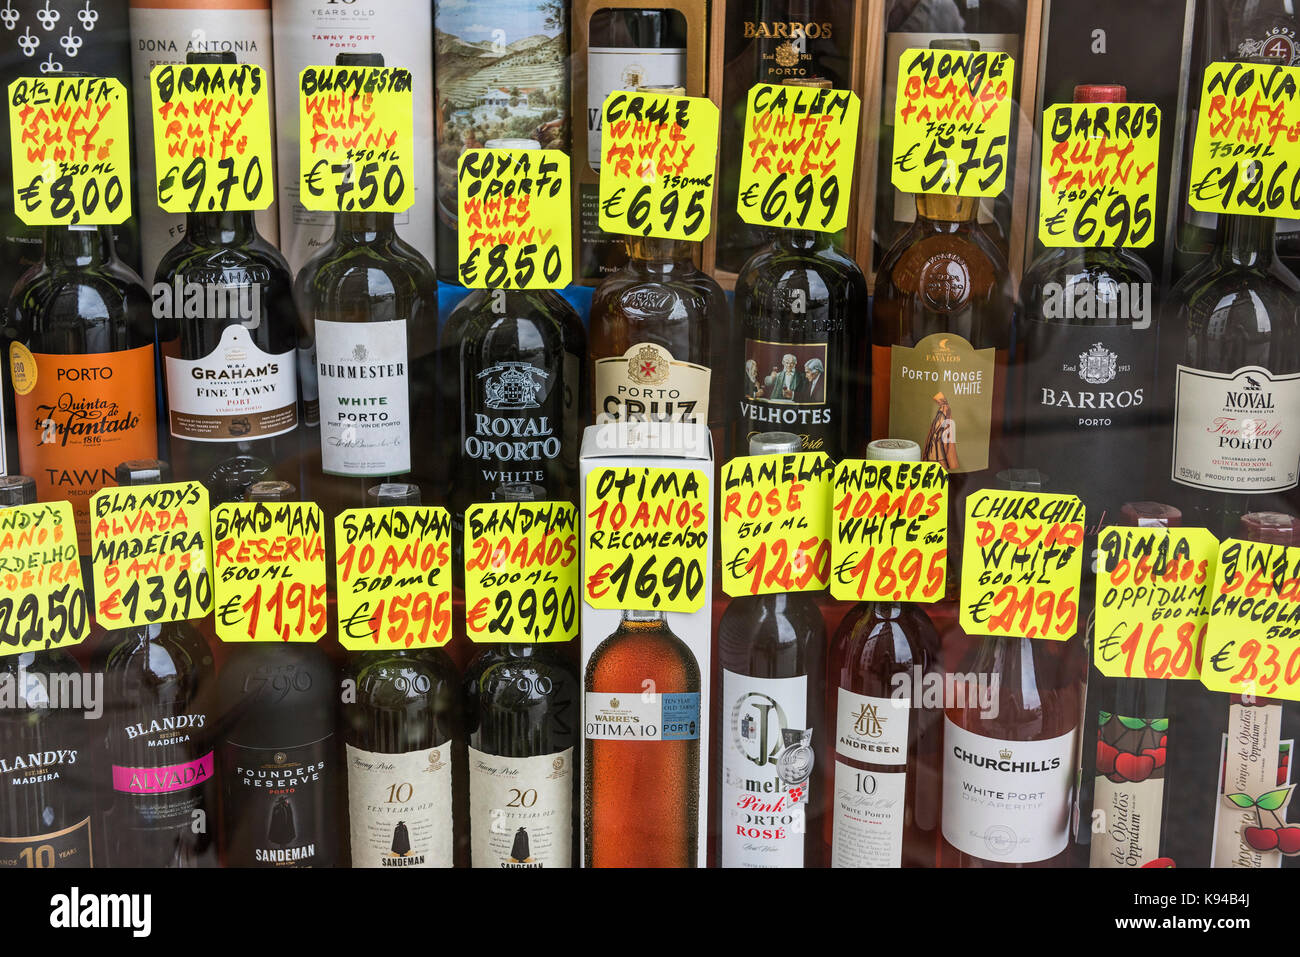 Bottles of port in shop window. Porto Portugal - Stock Image